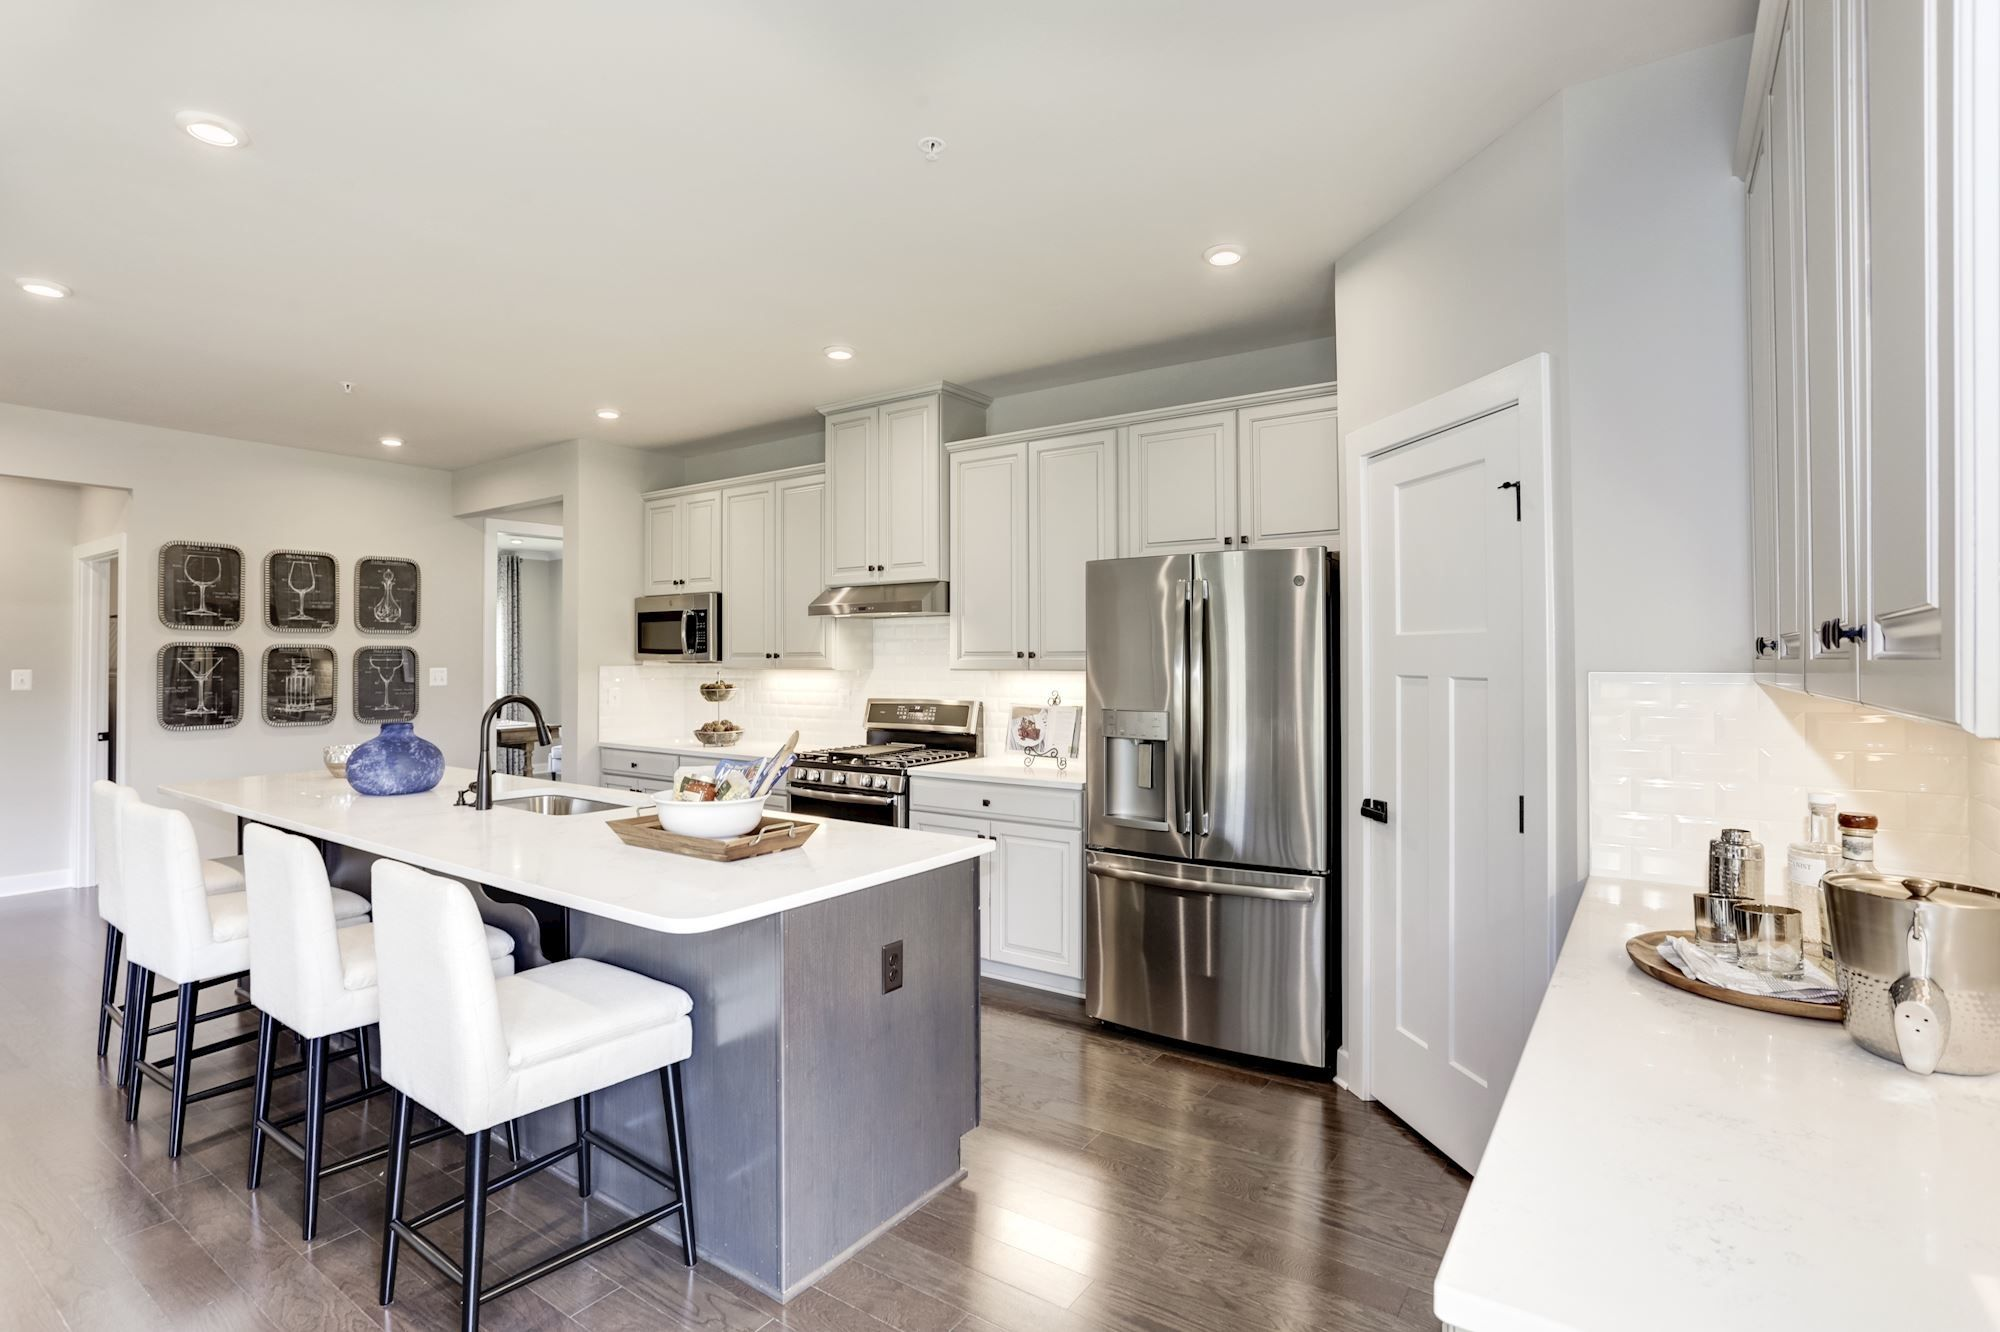 Kitchen featured in the Palladio Ranch By Ryan Homes in Warren County, NJ